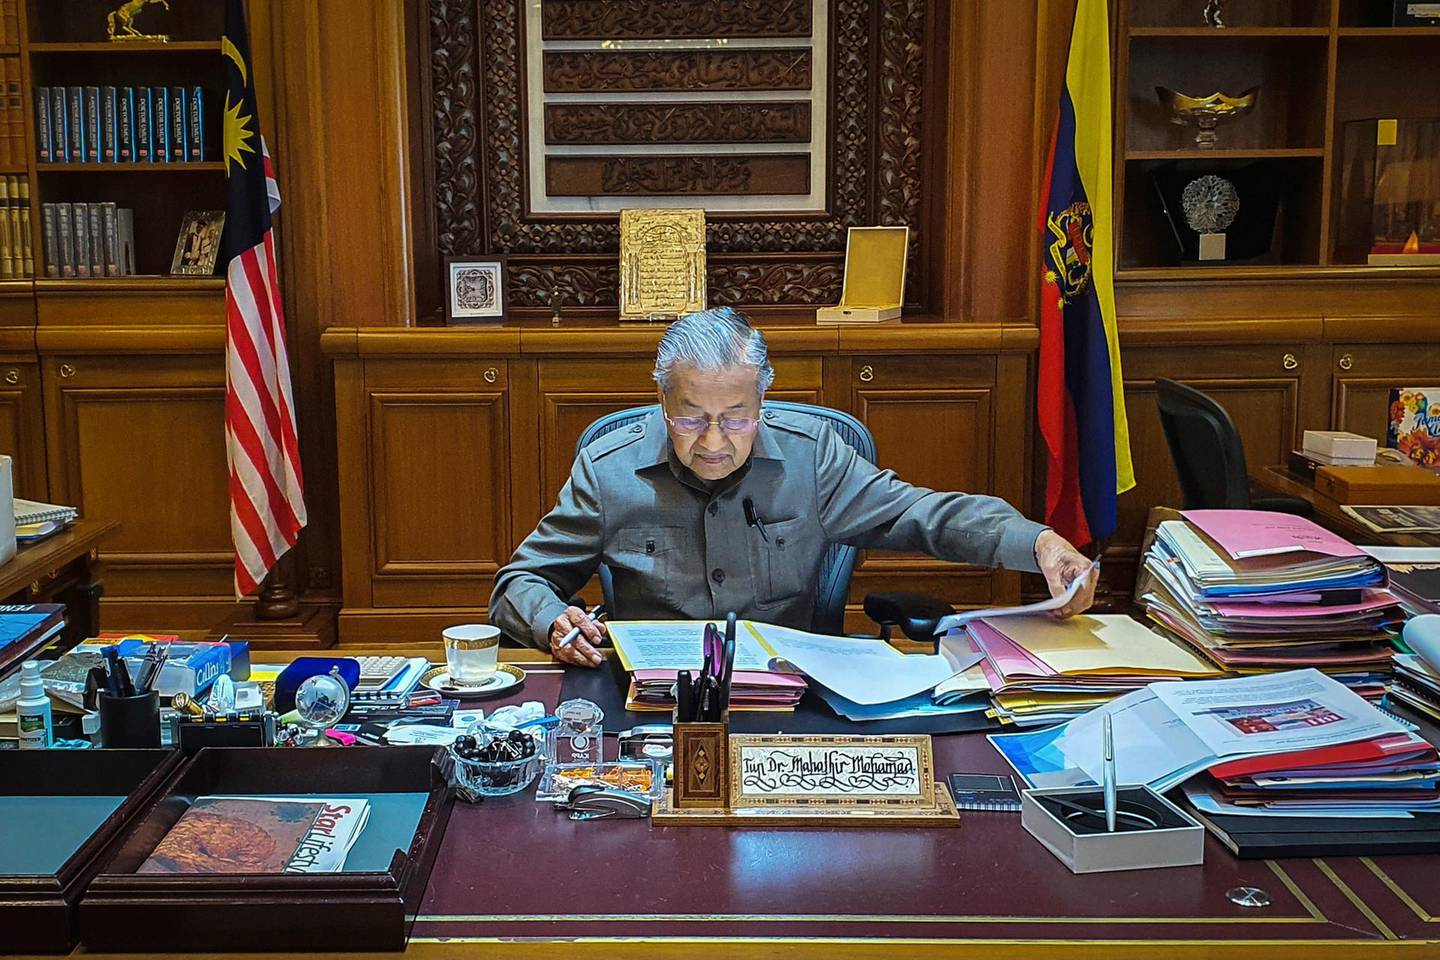 In this photo released by Prime Minister Office, Malaysian Prime Minister Mahathir Mohamad works at his office in Putrajaya, Malaysia, Tuesday, Feb. 25, 2020. Malaysia's king accepted Mahathir's shocking resignation Monday. The move came in tandem with plans by Mahathir's supporters to team up with opposition parties to form a new government and foil the transition of power to his named successor, Anwar Ibrahim. (Prime Minister Office via AP)